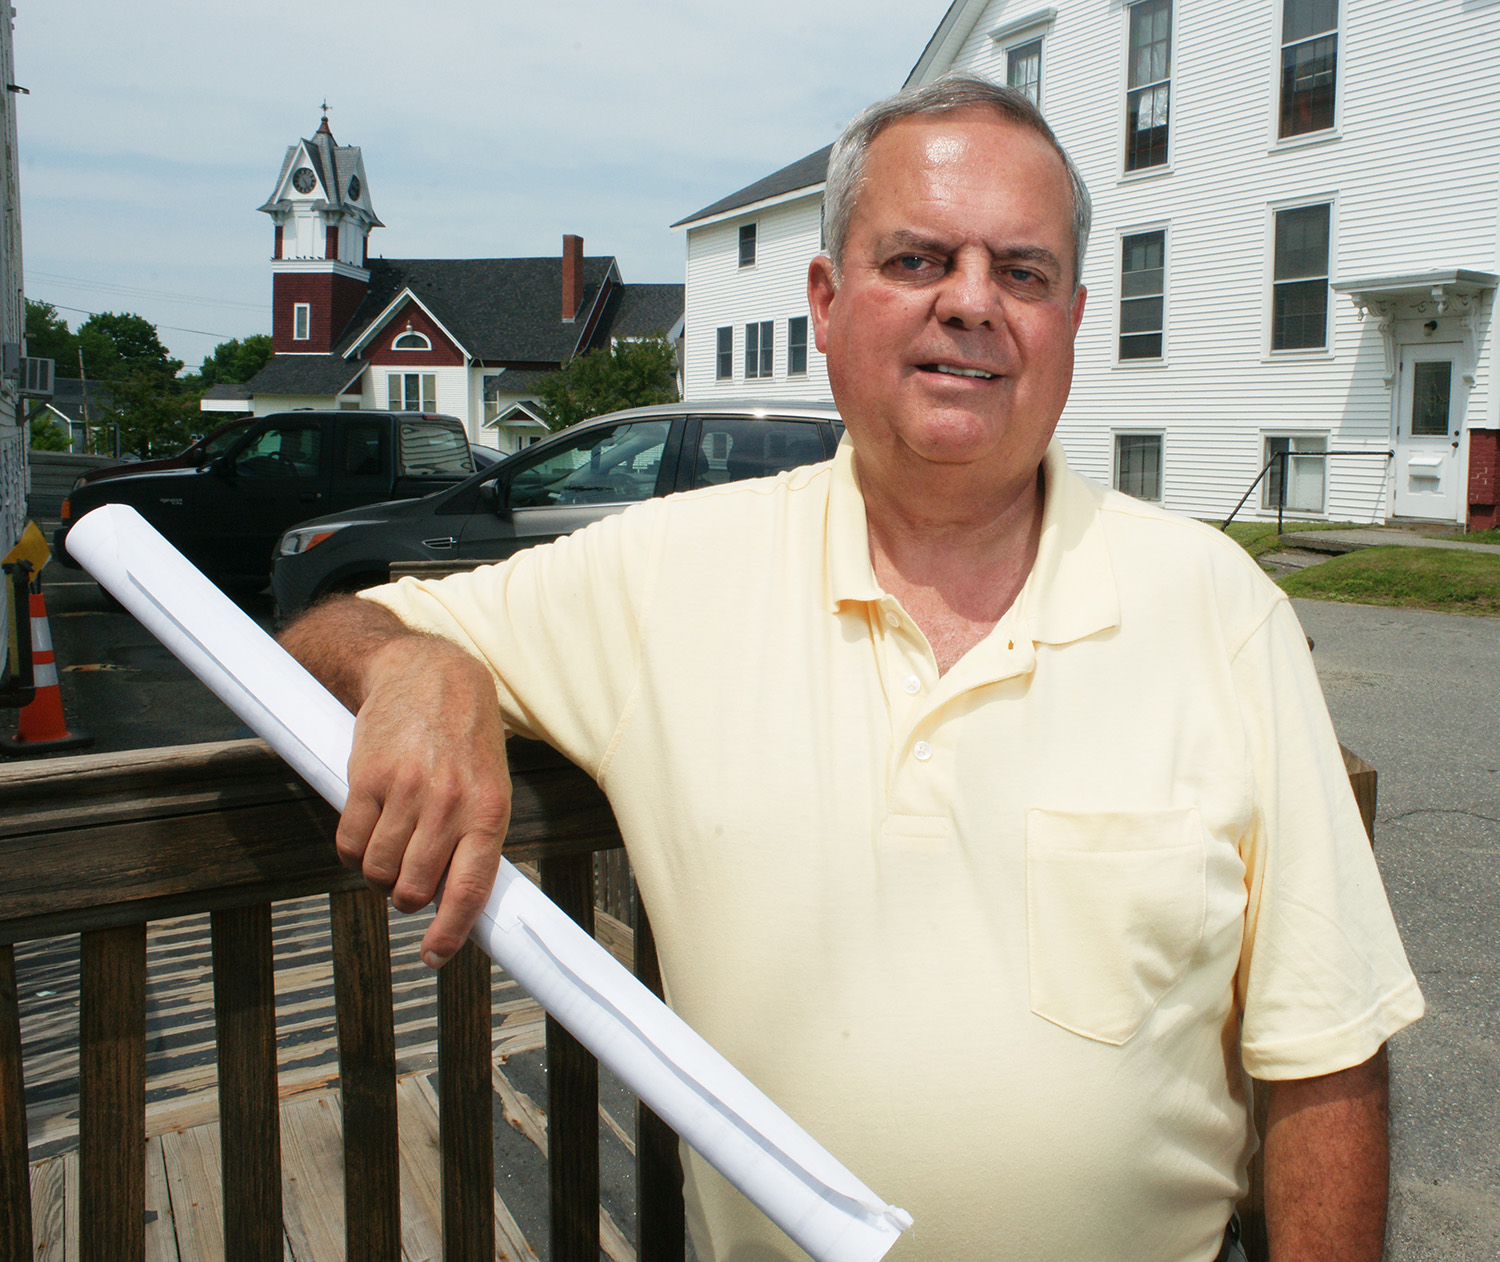 Milo Town Manager David Maynard, holding a property map of the town's business park as he leans on the porch of Milo Town Hall, says that a proposal to dredge Searsport harbor would bring good-paying jobs to Milo and other towns in Maine's economically depressed interior. A developer has proposed building a wood products plant in the business park, but only if the dredge project moves forward. Milo is linked to Searsport by rail.